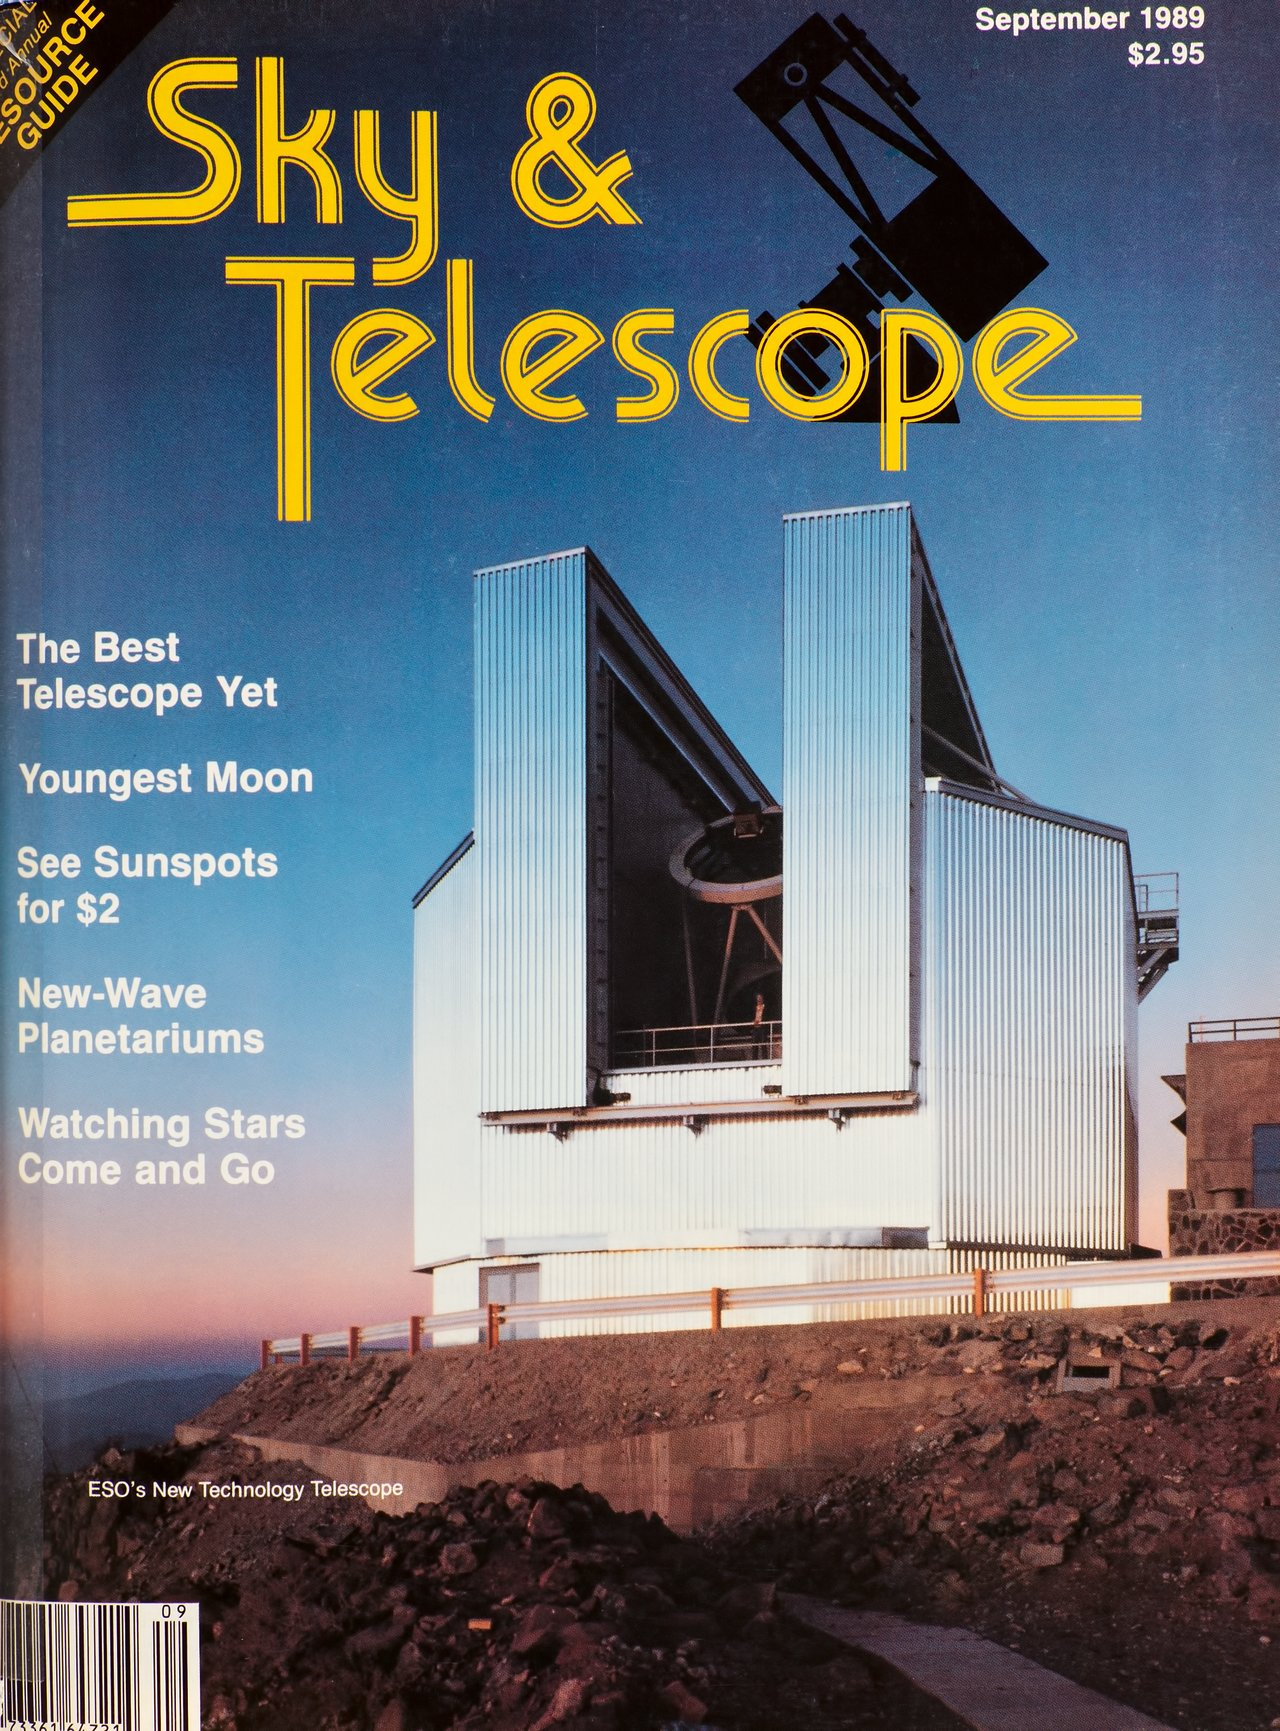 The NTT, cover of the Sky & Telescope Magazine in September 1989